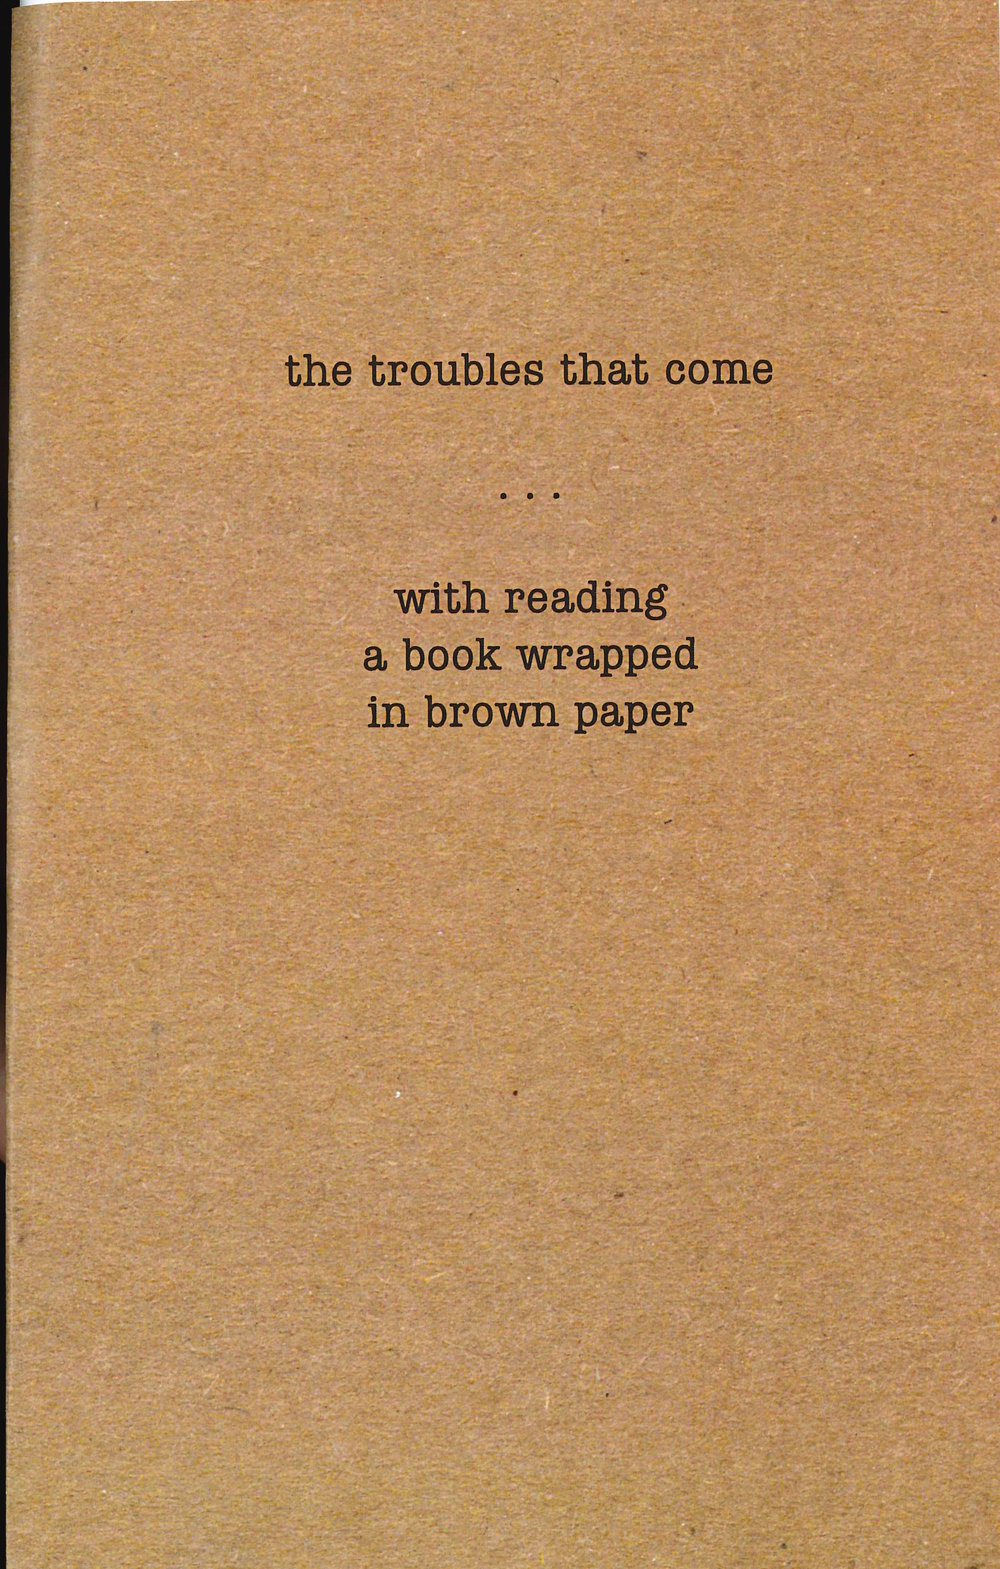 the troubles that come . . . with reading, 2004